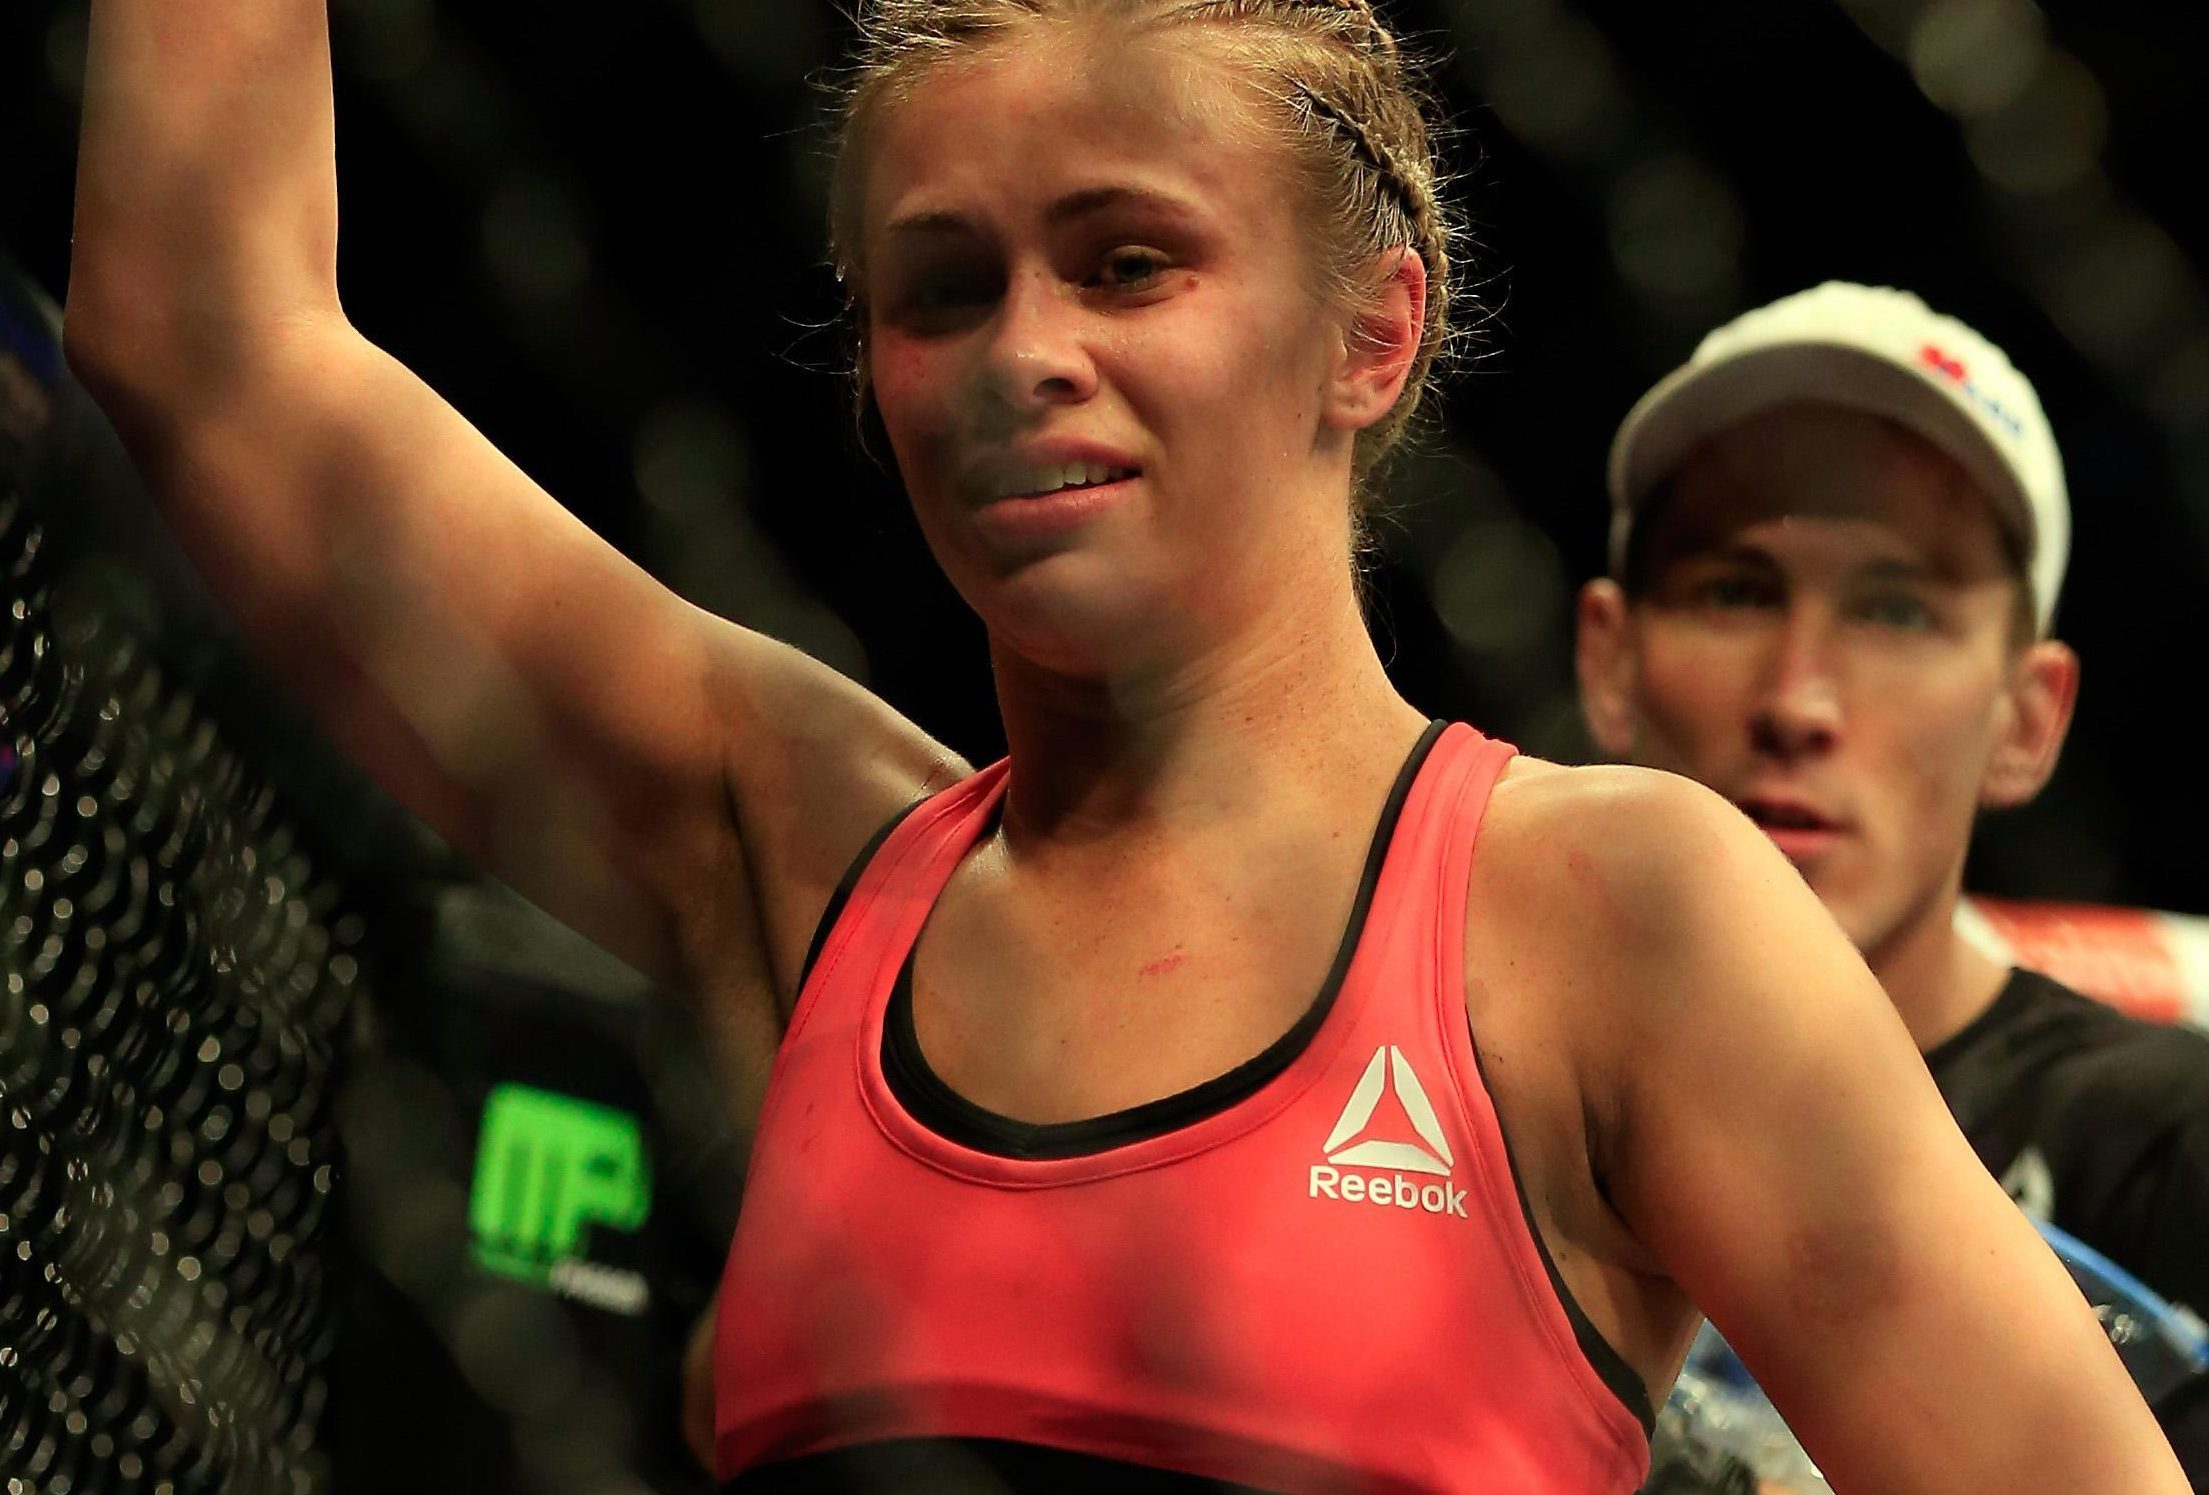 UFC star Paige VanZant reveals she'd 'love' to follow Ronda Rousey into WWE